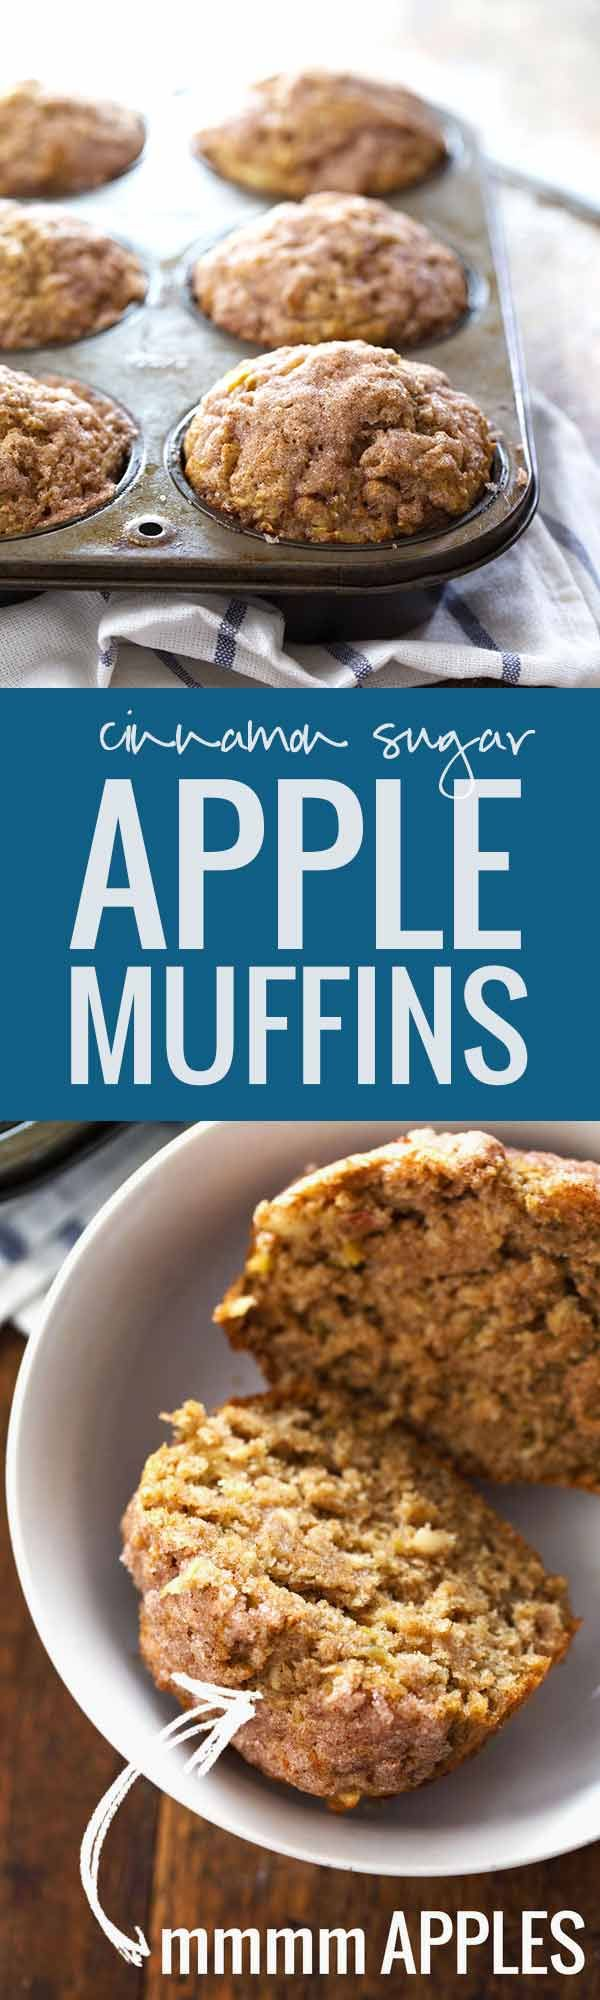 Healthy Cinnamon Sugar Apple Muffins - whole wheat, coconut oil, less sugar, and loaded with apple deliciousness! 230 calories. | pinchofyum.com